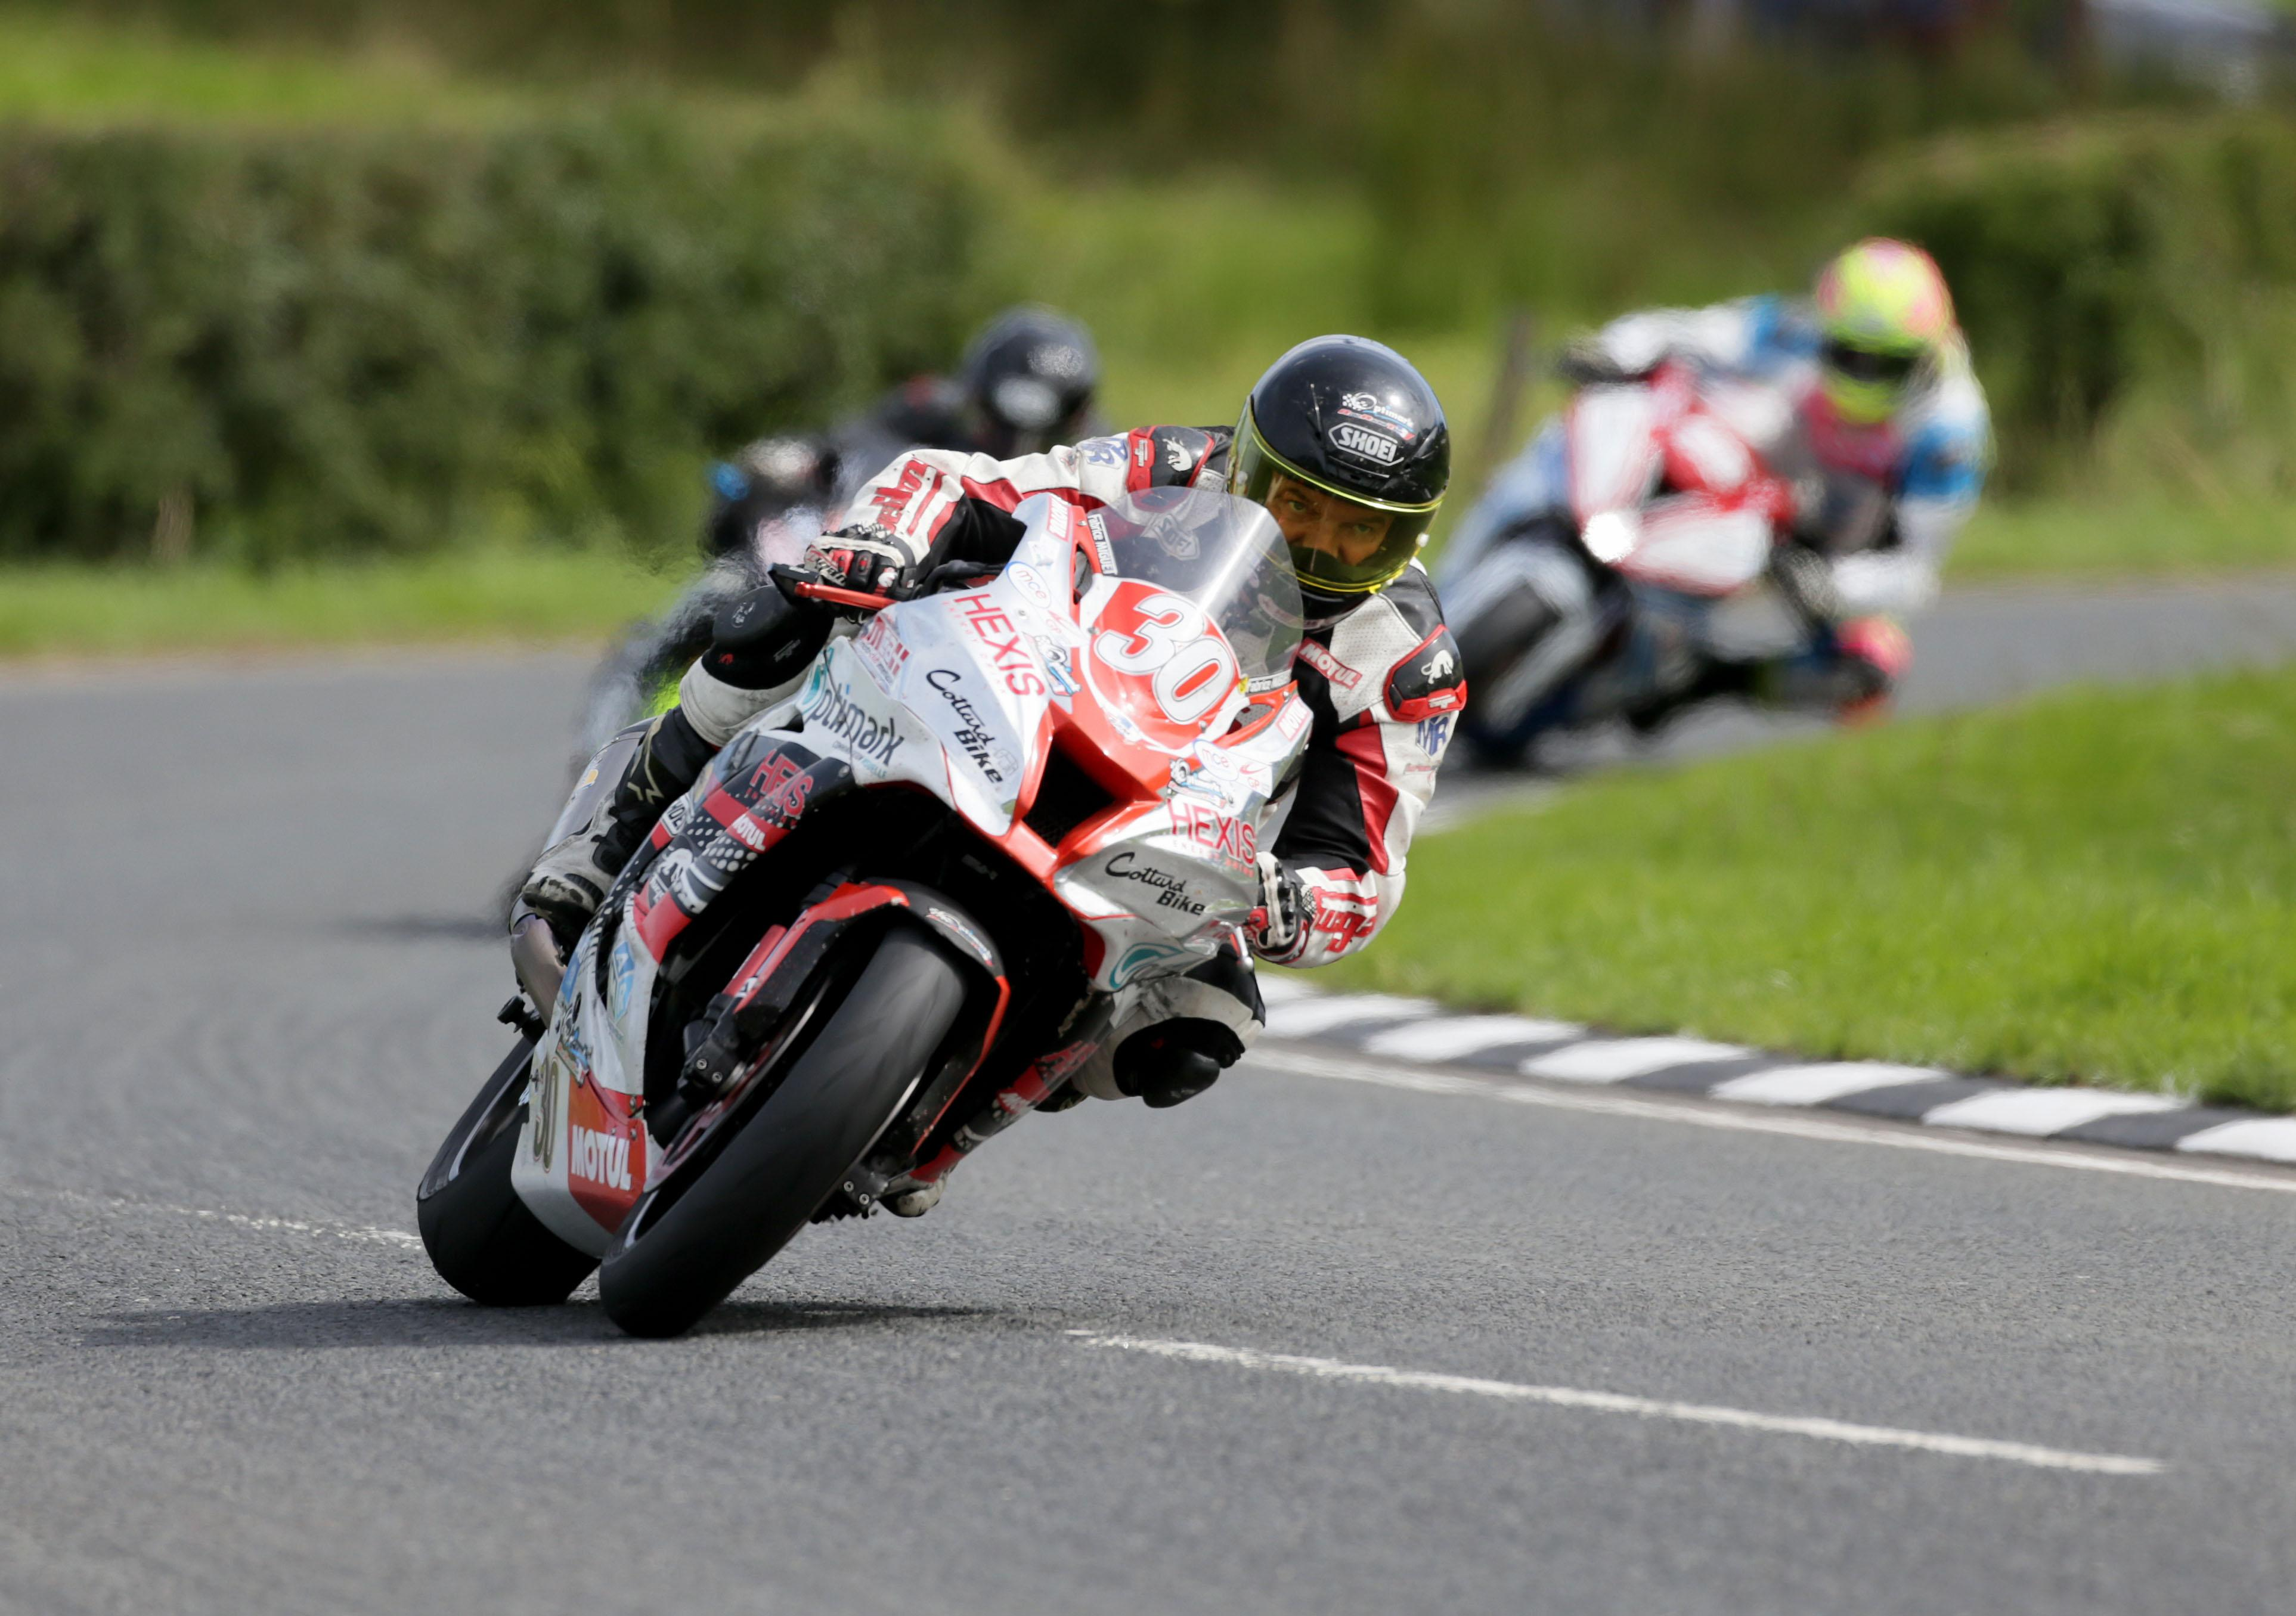 Miguet crashed on Saturday at the Ulster Grand Prix